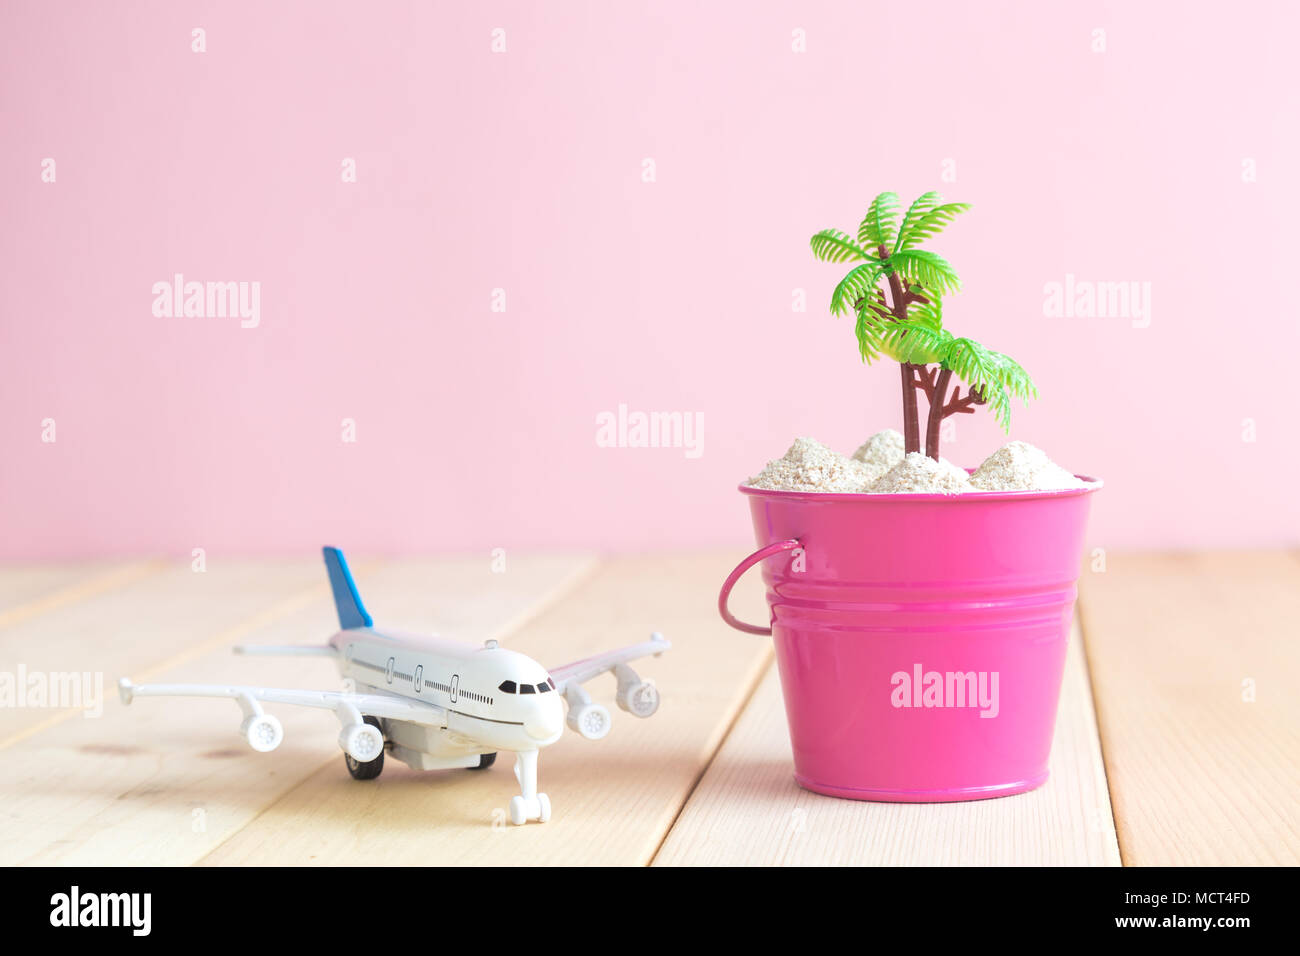 Airplane model toy and bucket full of sand with palm tree on table against pastel pink background minimal travel concept. Space for copy. Stock Photo